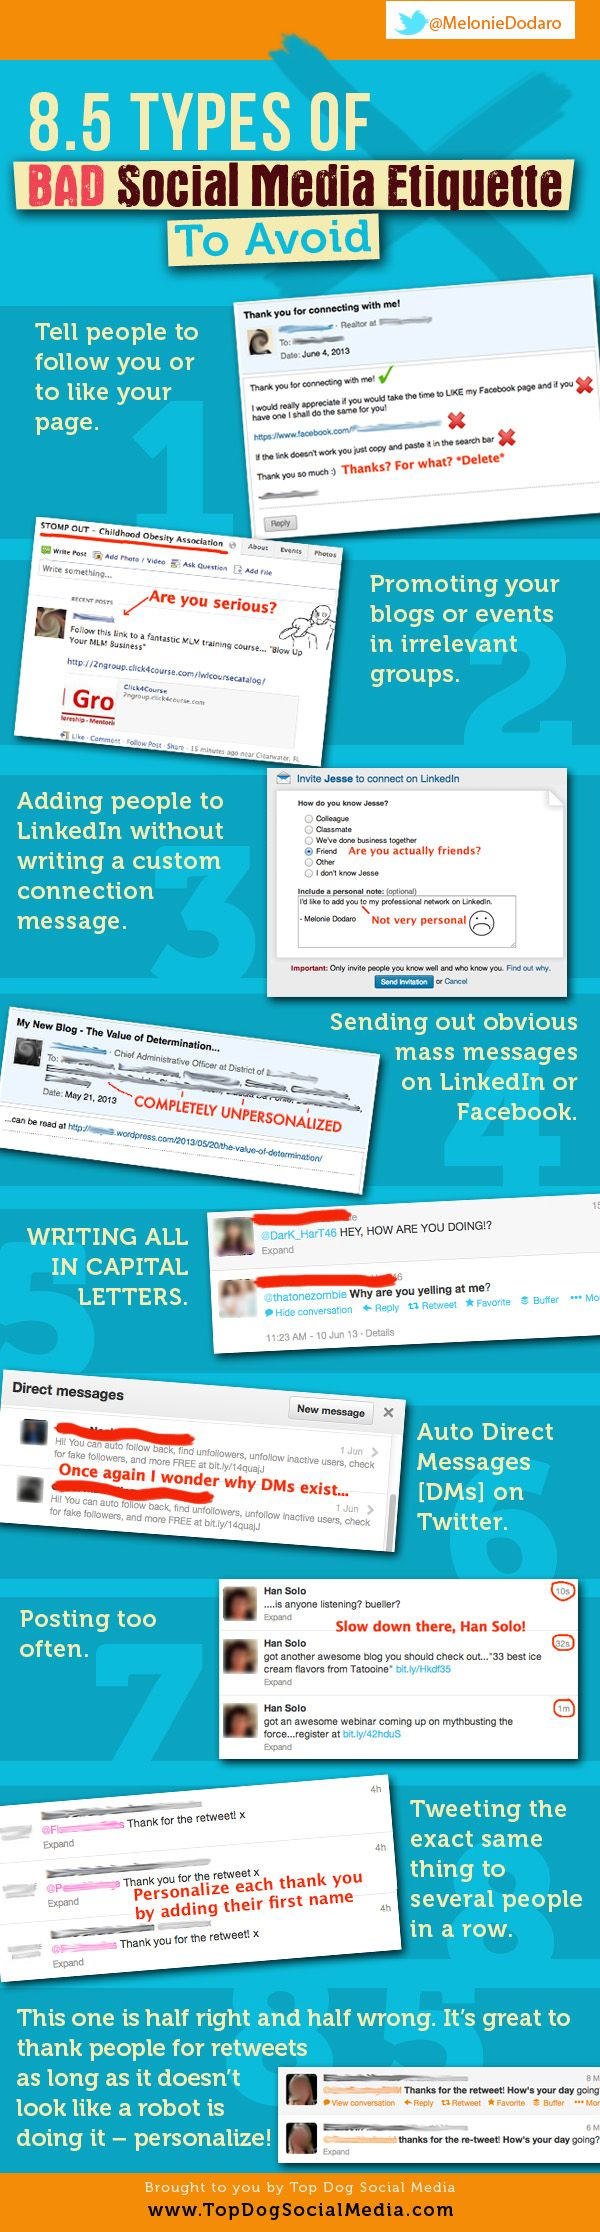 8.5 Types of Bad Social Media Etiquette That Are Ruining Your Strategy